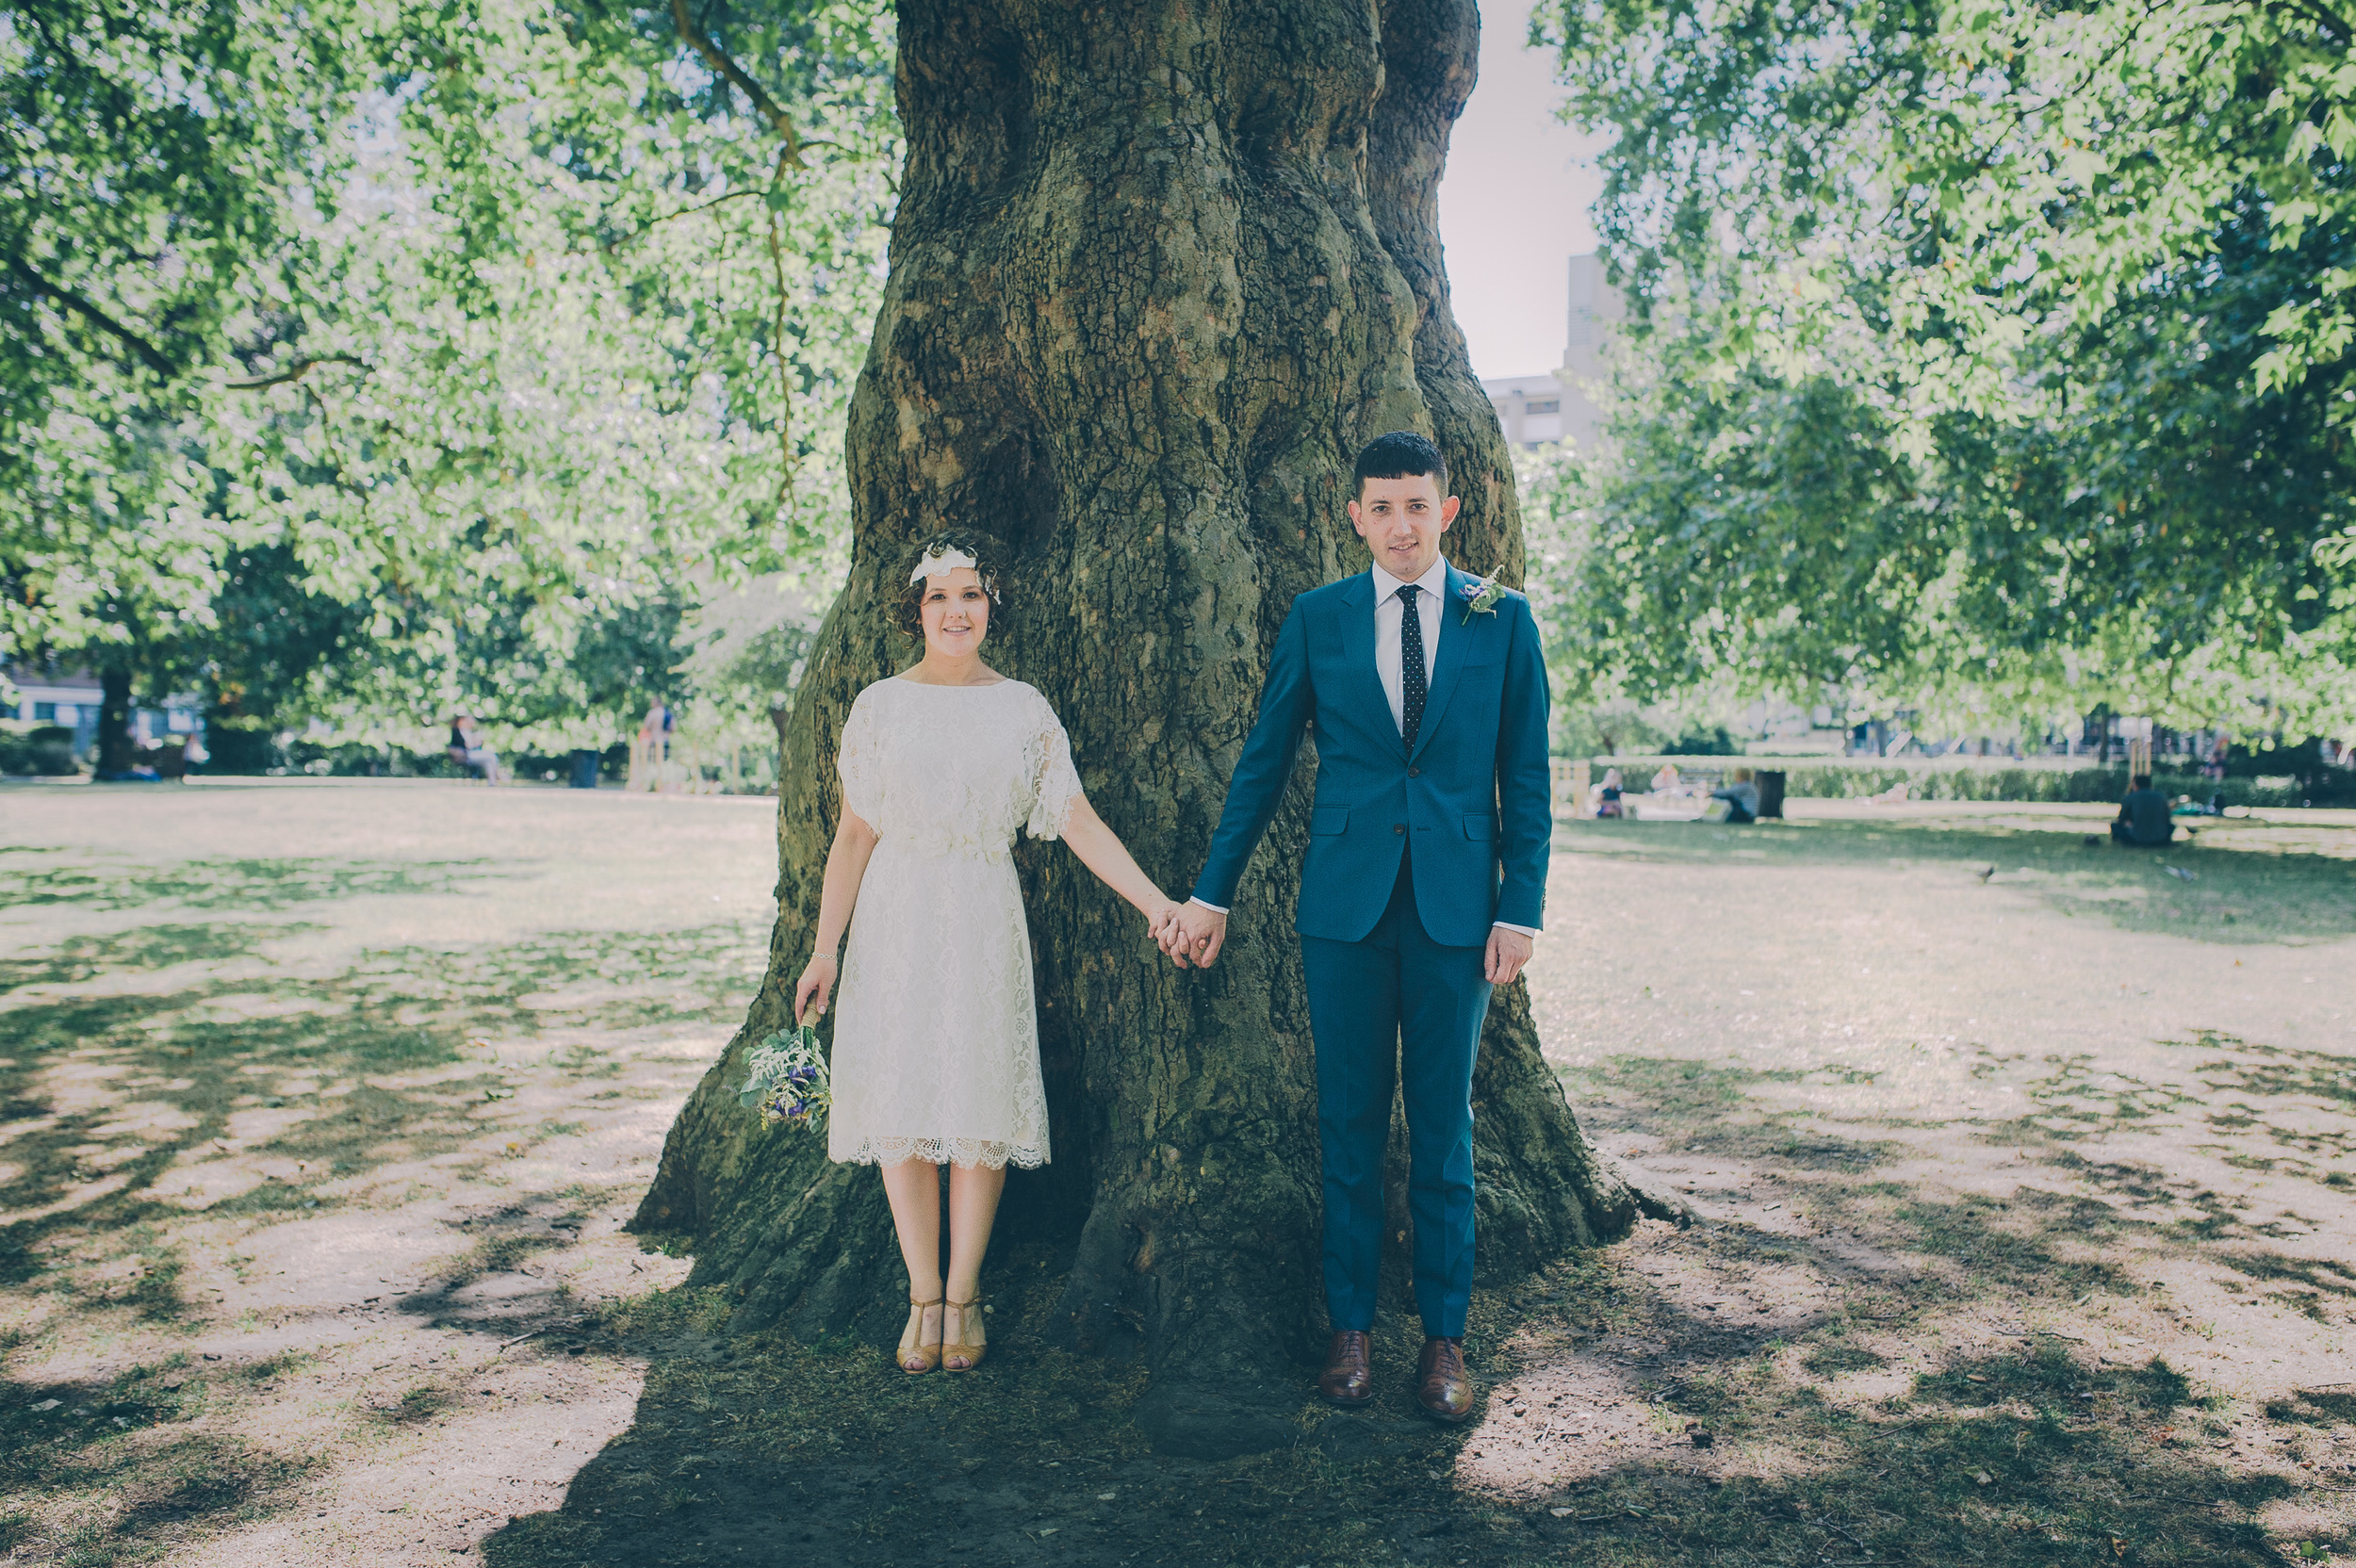 London Wedding in the park